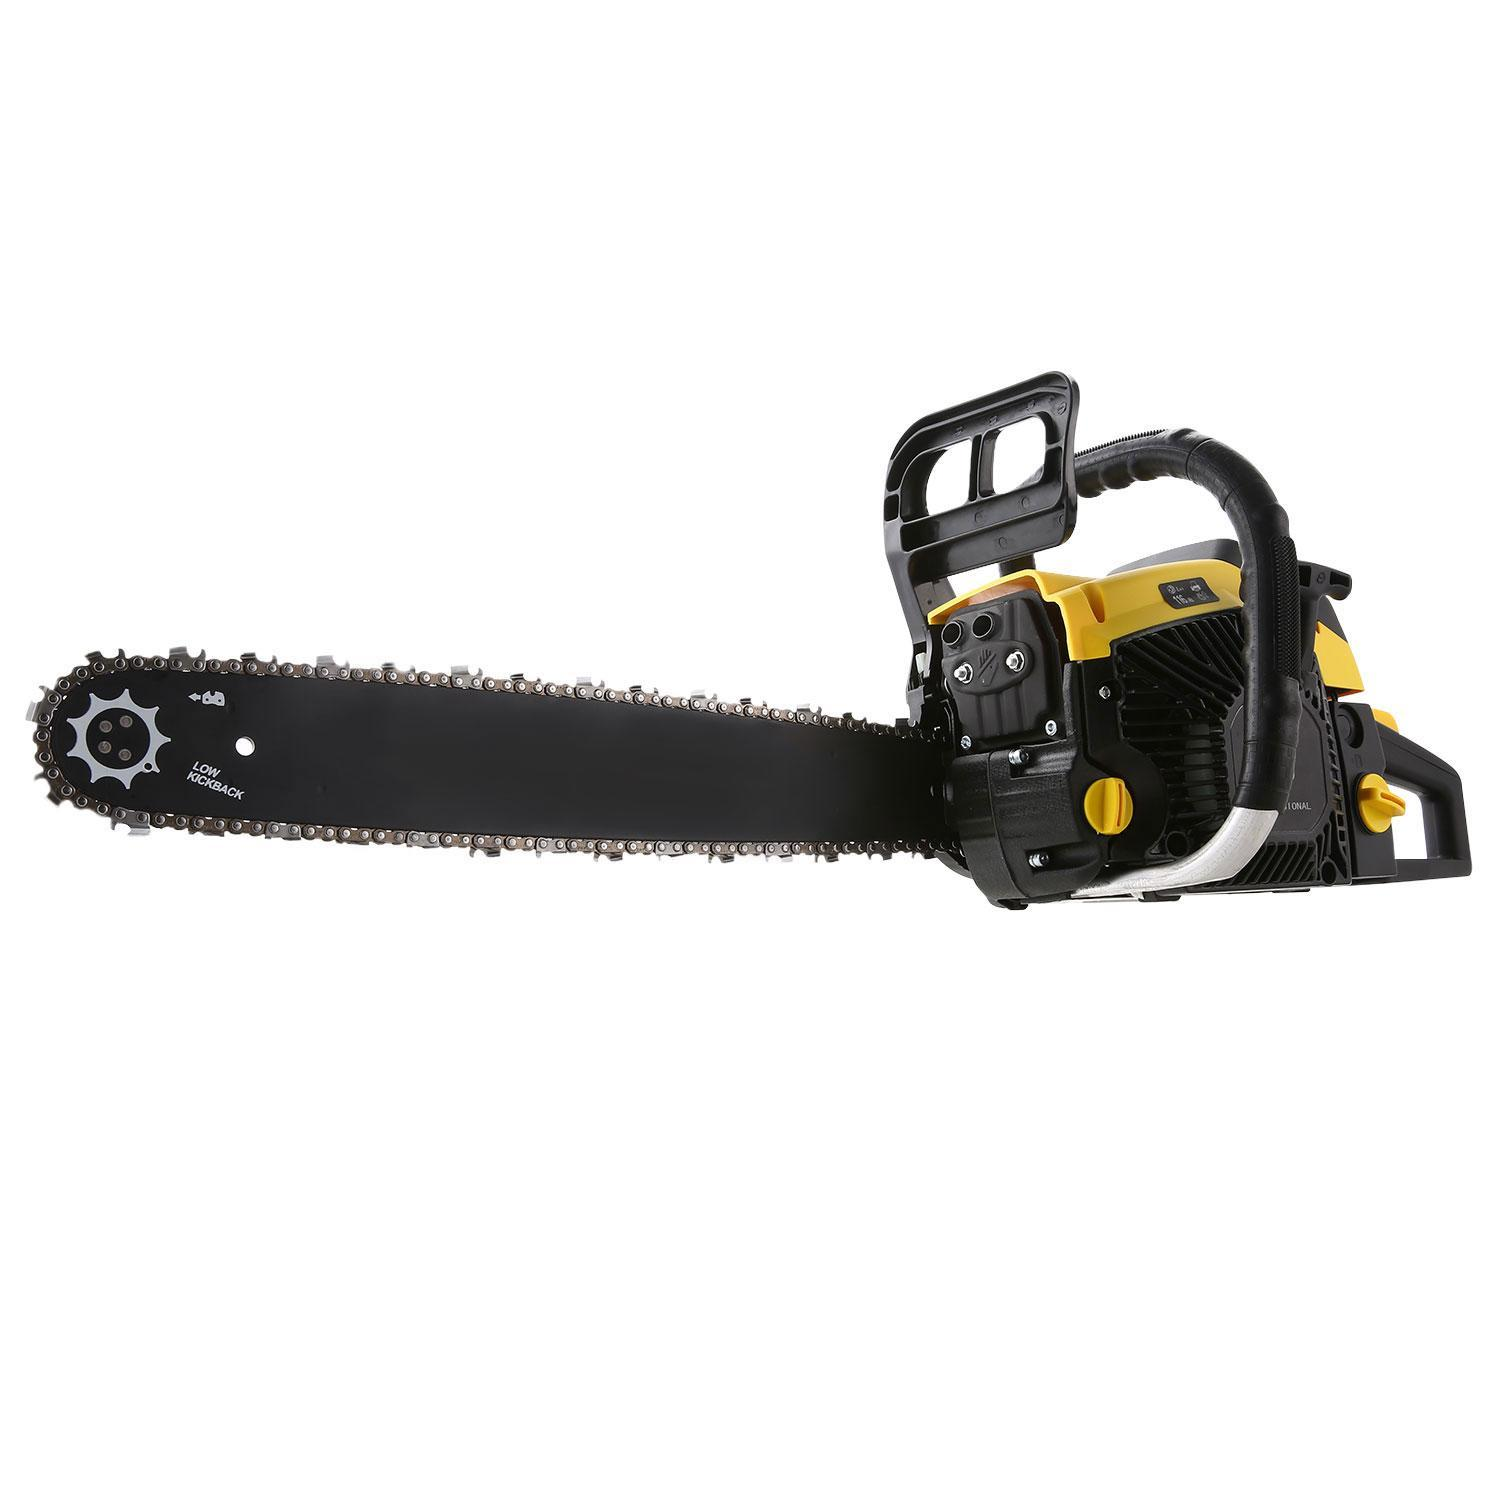 "Clearance!!Hifashion 58CC Chainsaw 20"" 4.0HP 2 Strokes Gas Powered Petrol Chainsaw Saw Blade With Chains, Bar Cover... by"